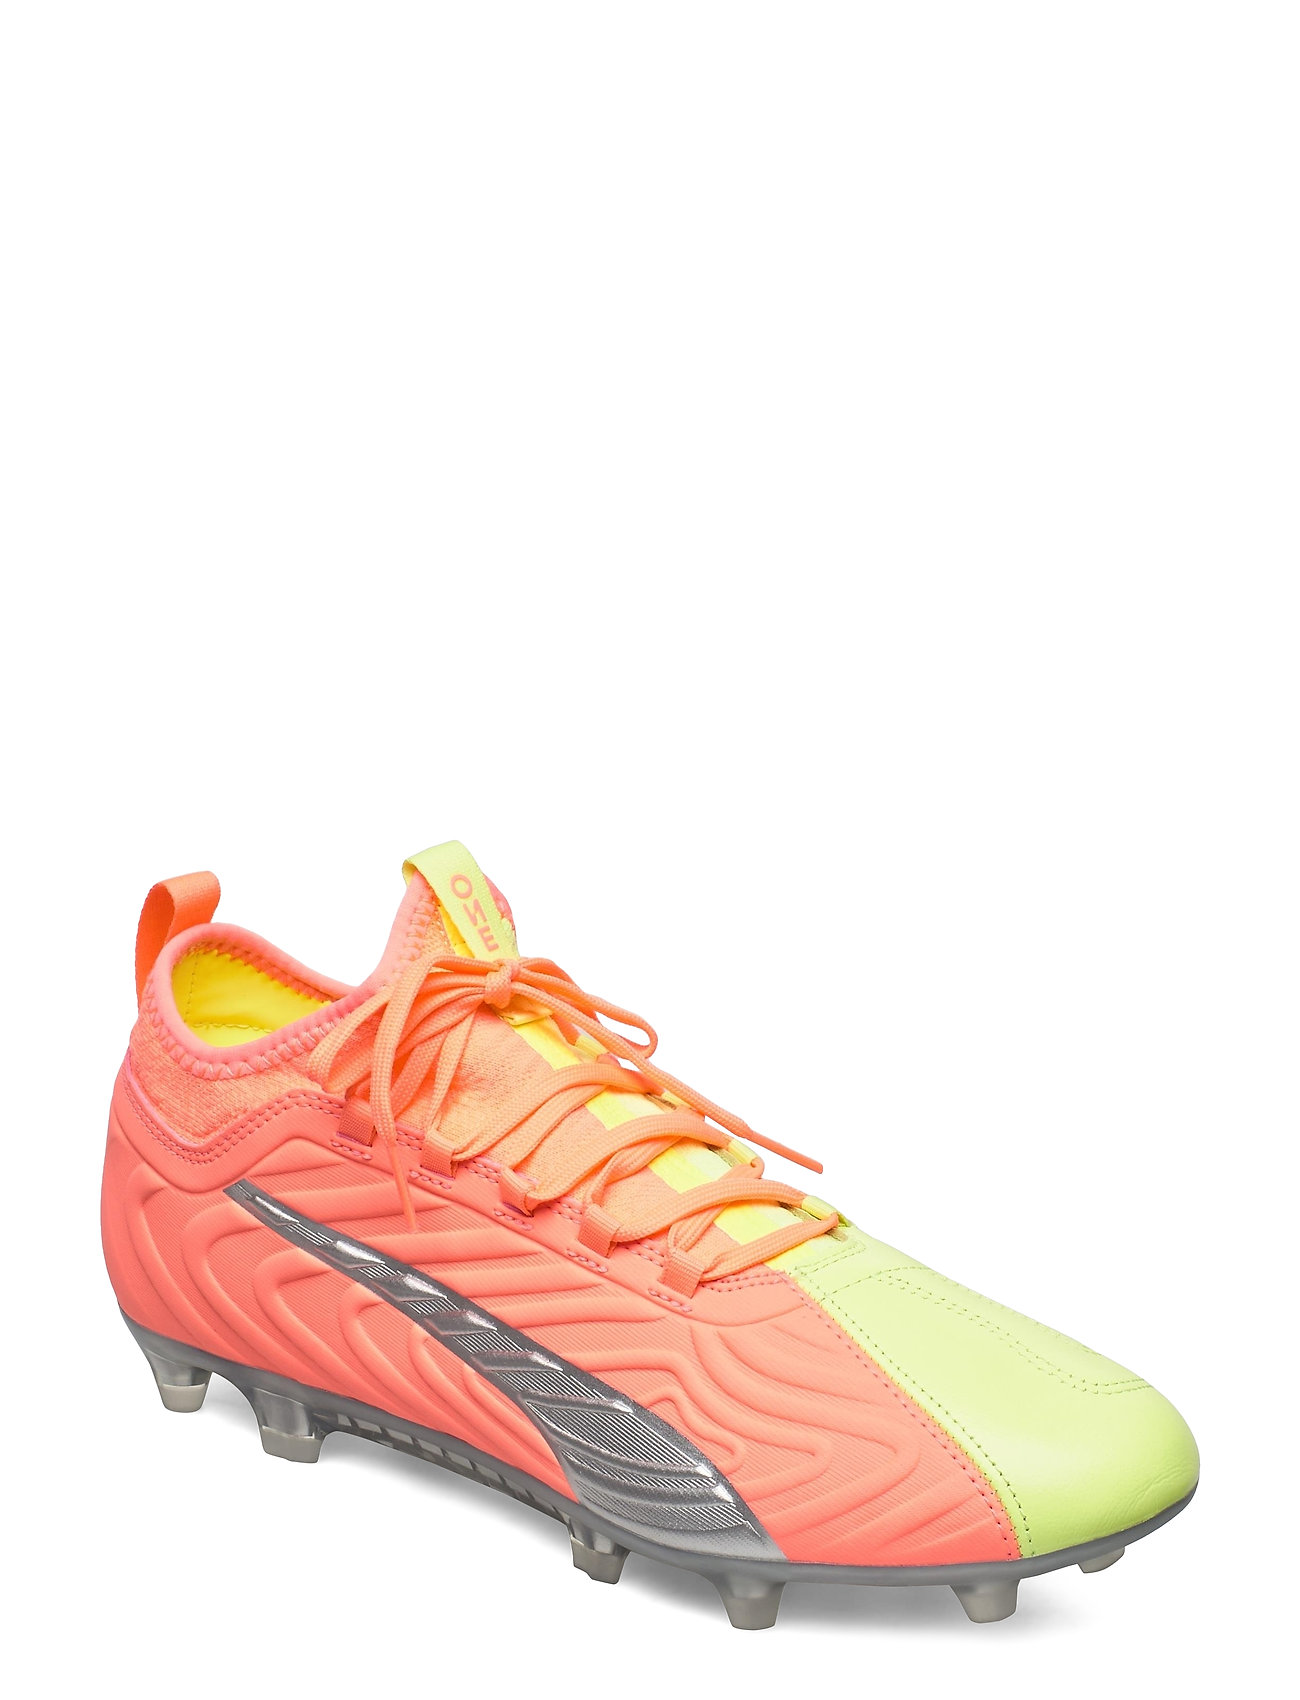 Image of Puma 20.3 Fg/Ag Osg Shoes Sport Shoes Football Boots Orange PUMA (3463419319)